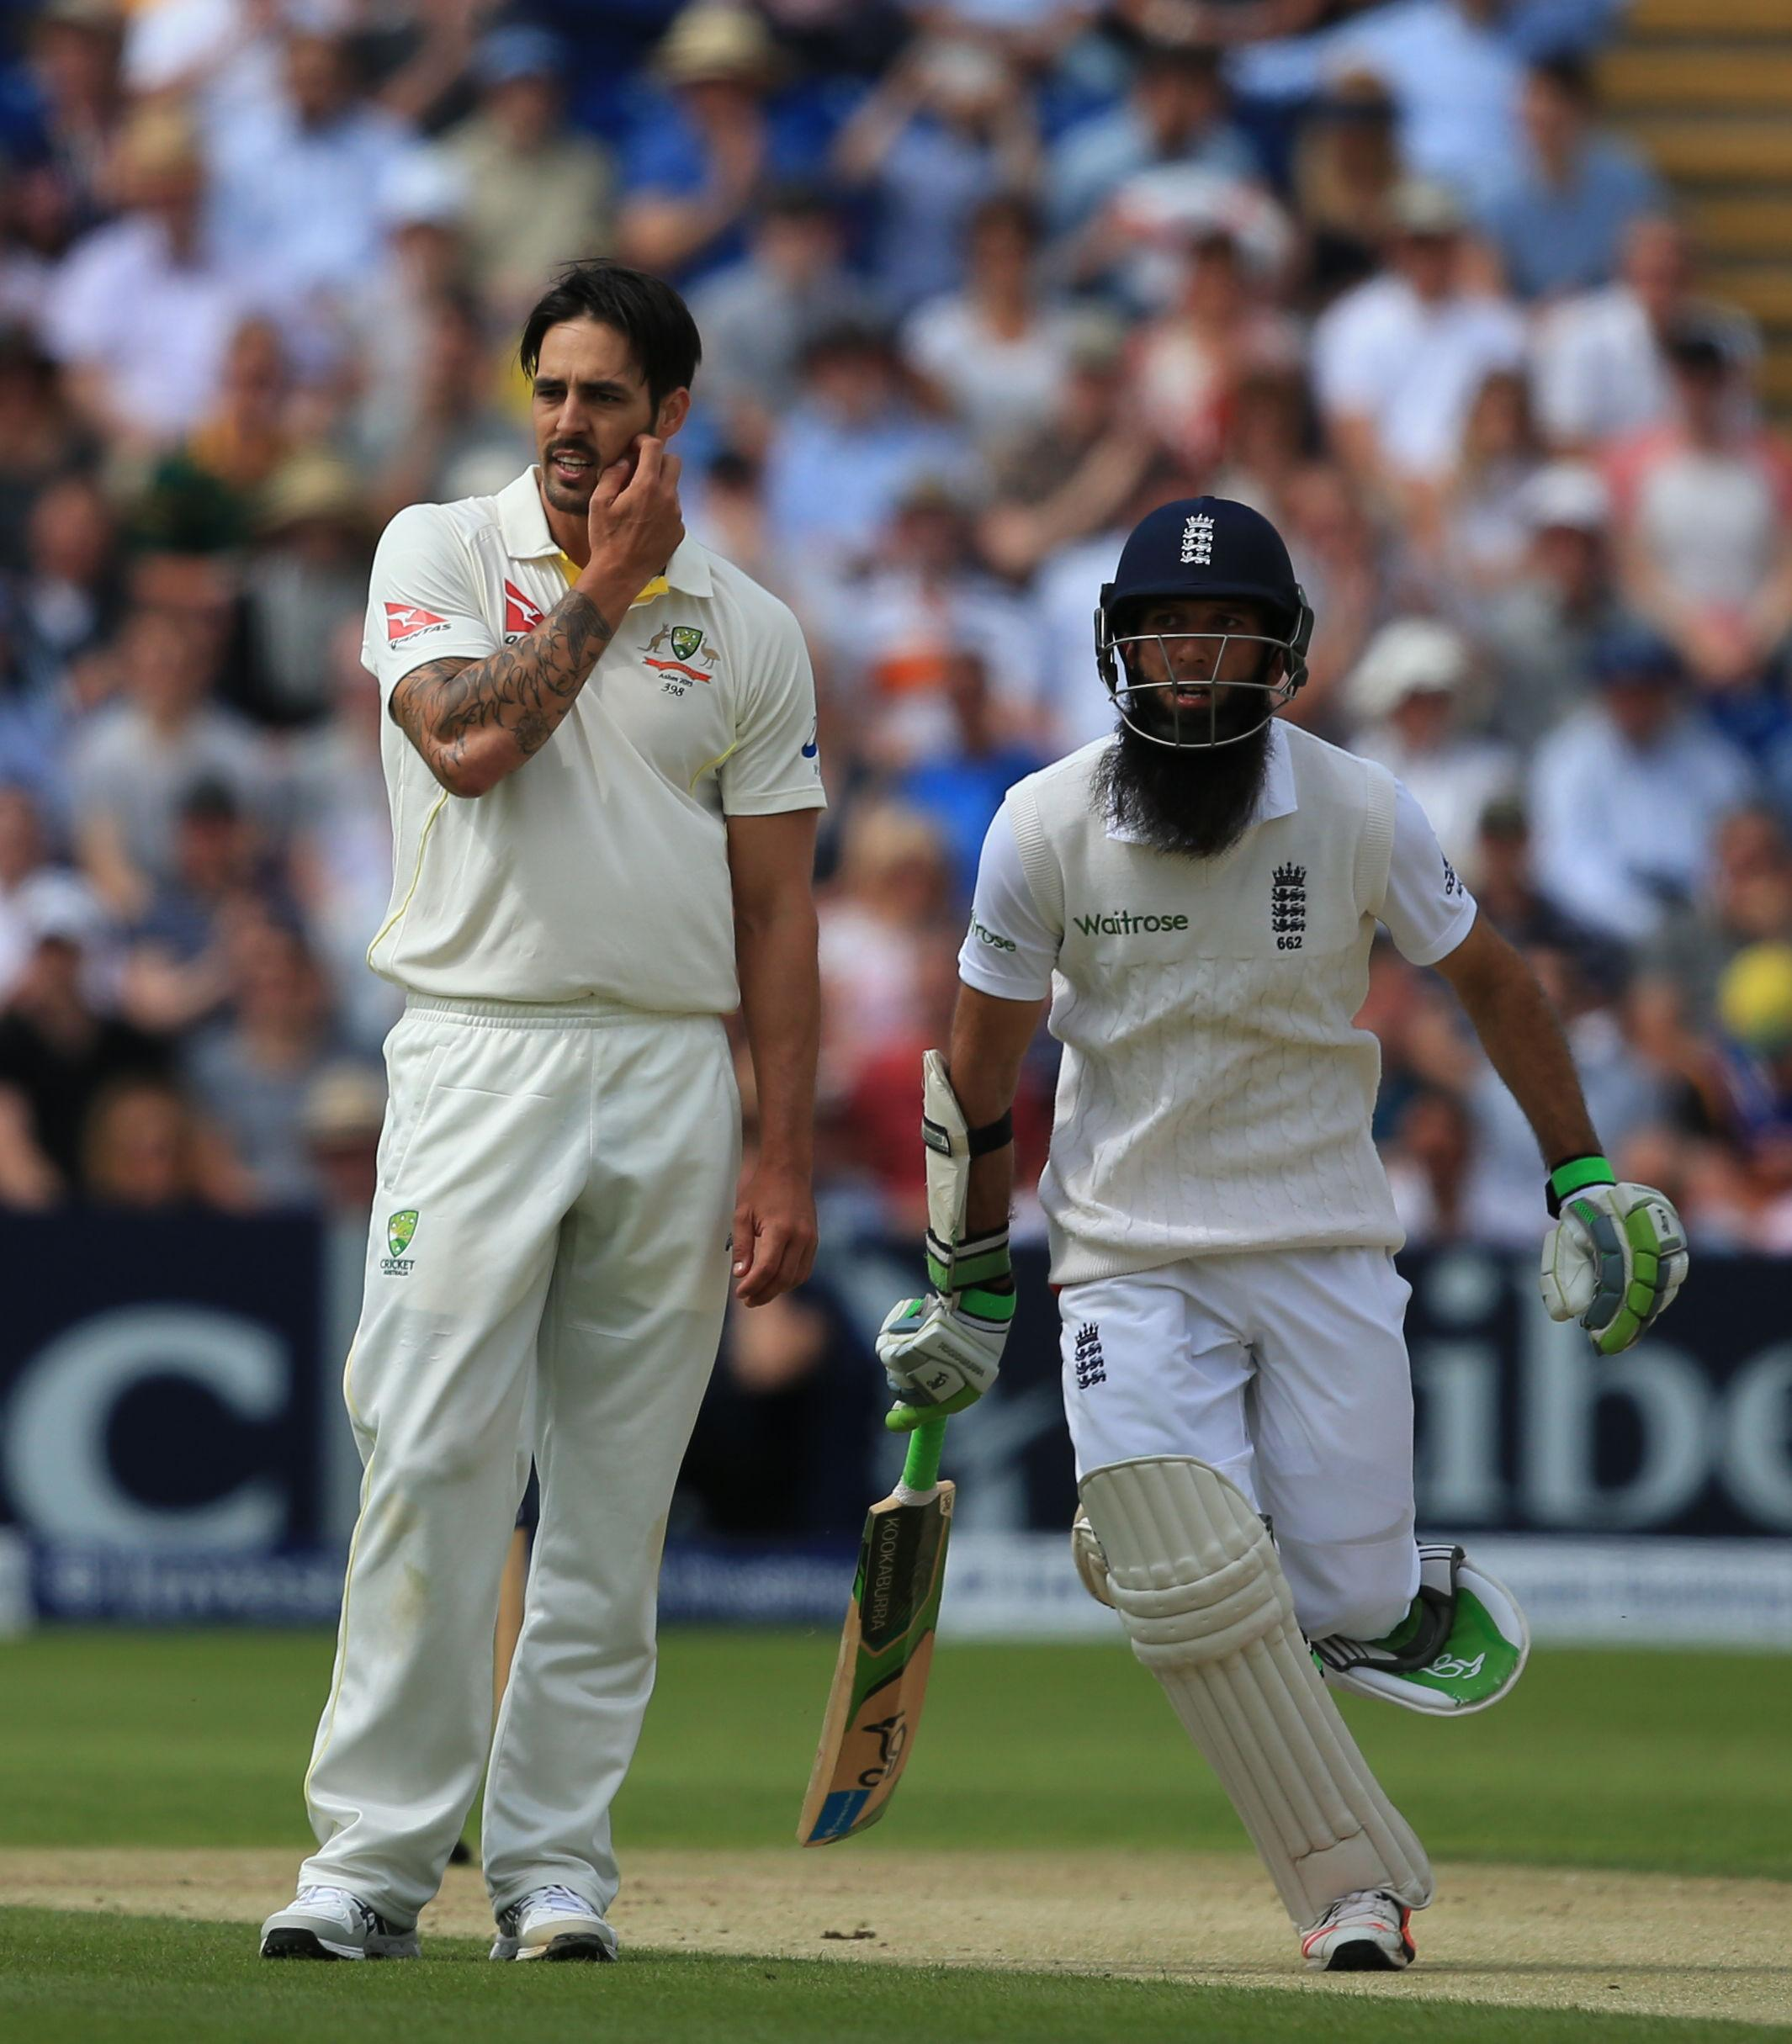 The alleged incident occurred during the 2015 Ashes Test in Cardiff